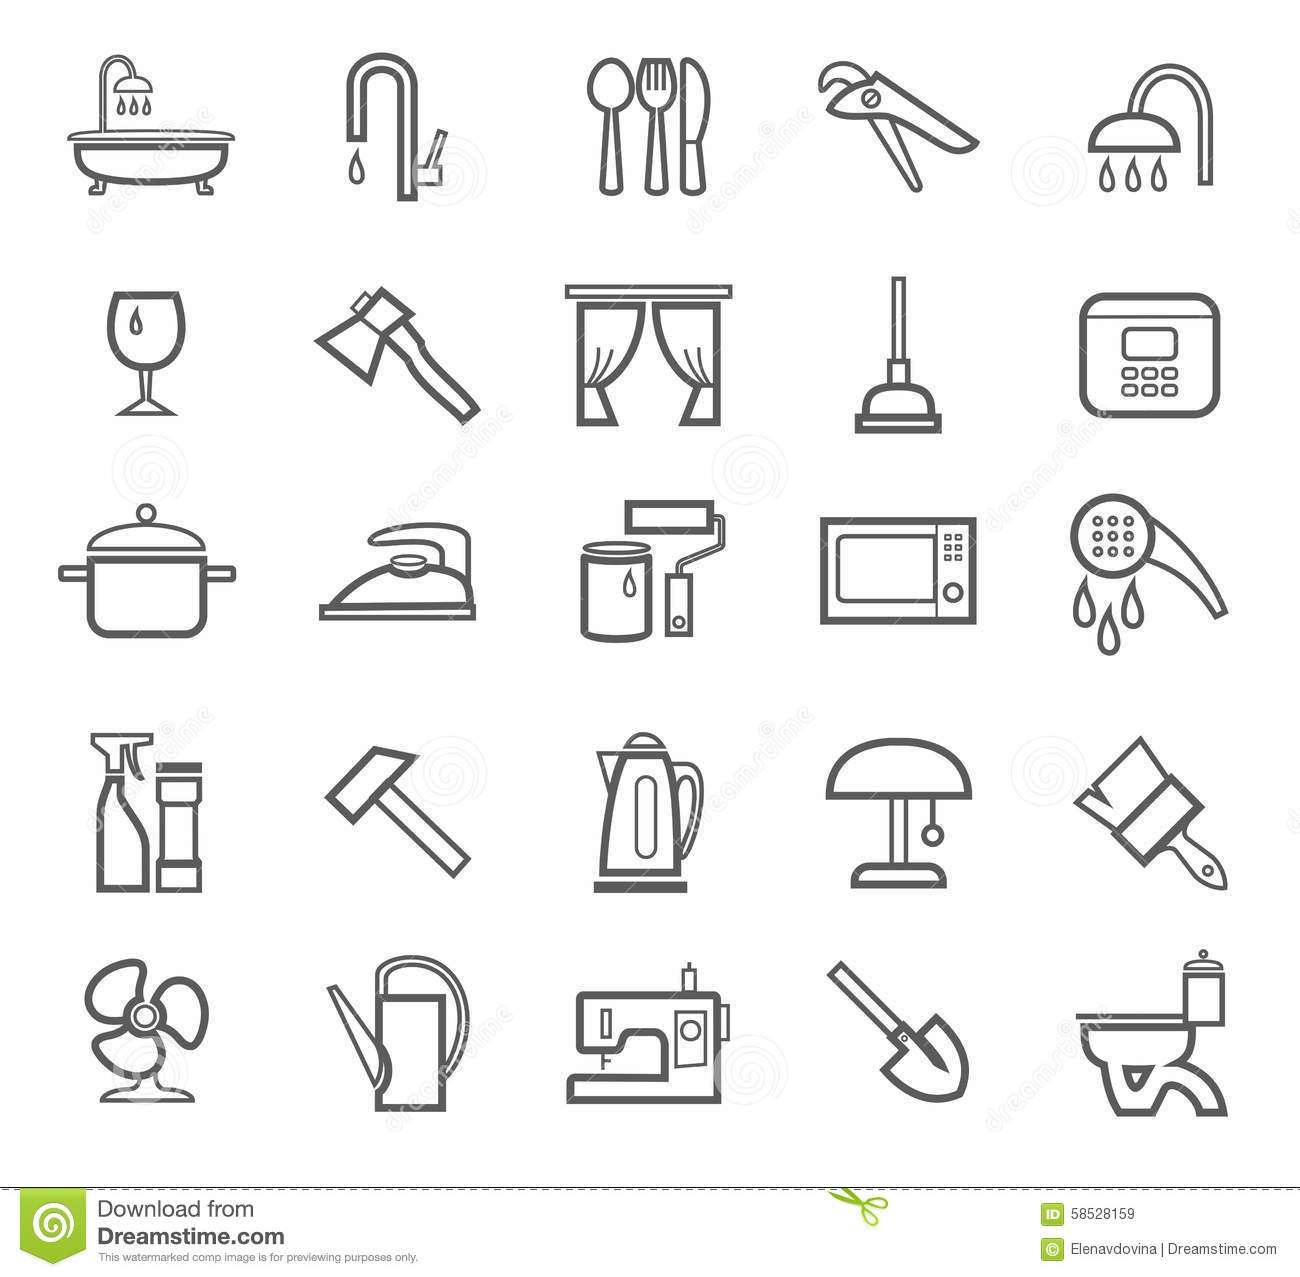 Signs Household Goods Appliances Dishes Tools Grey